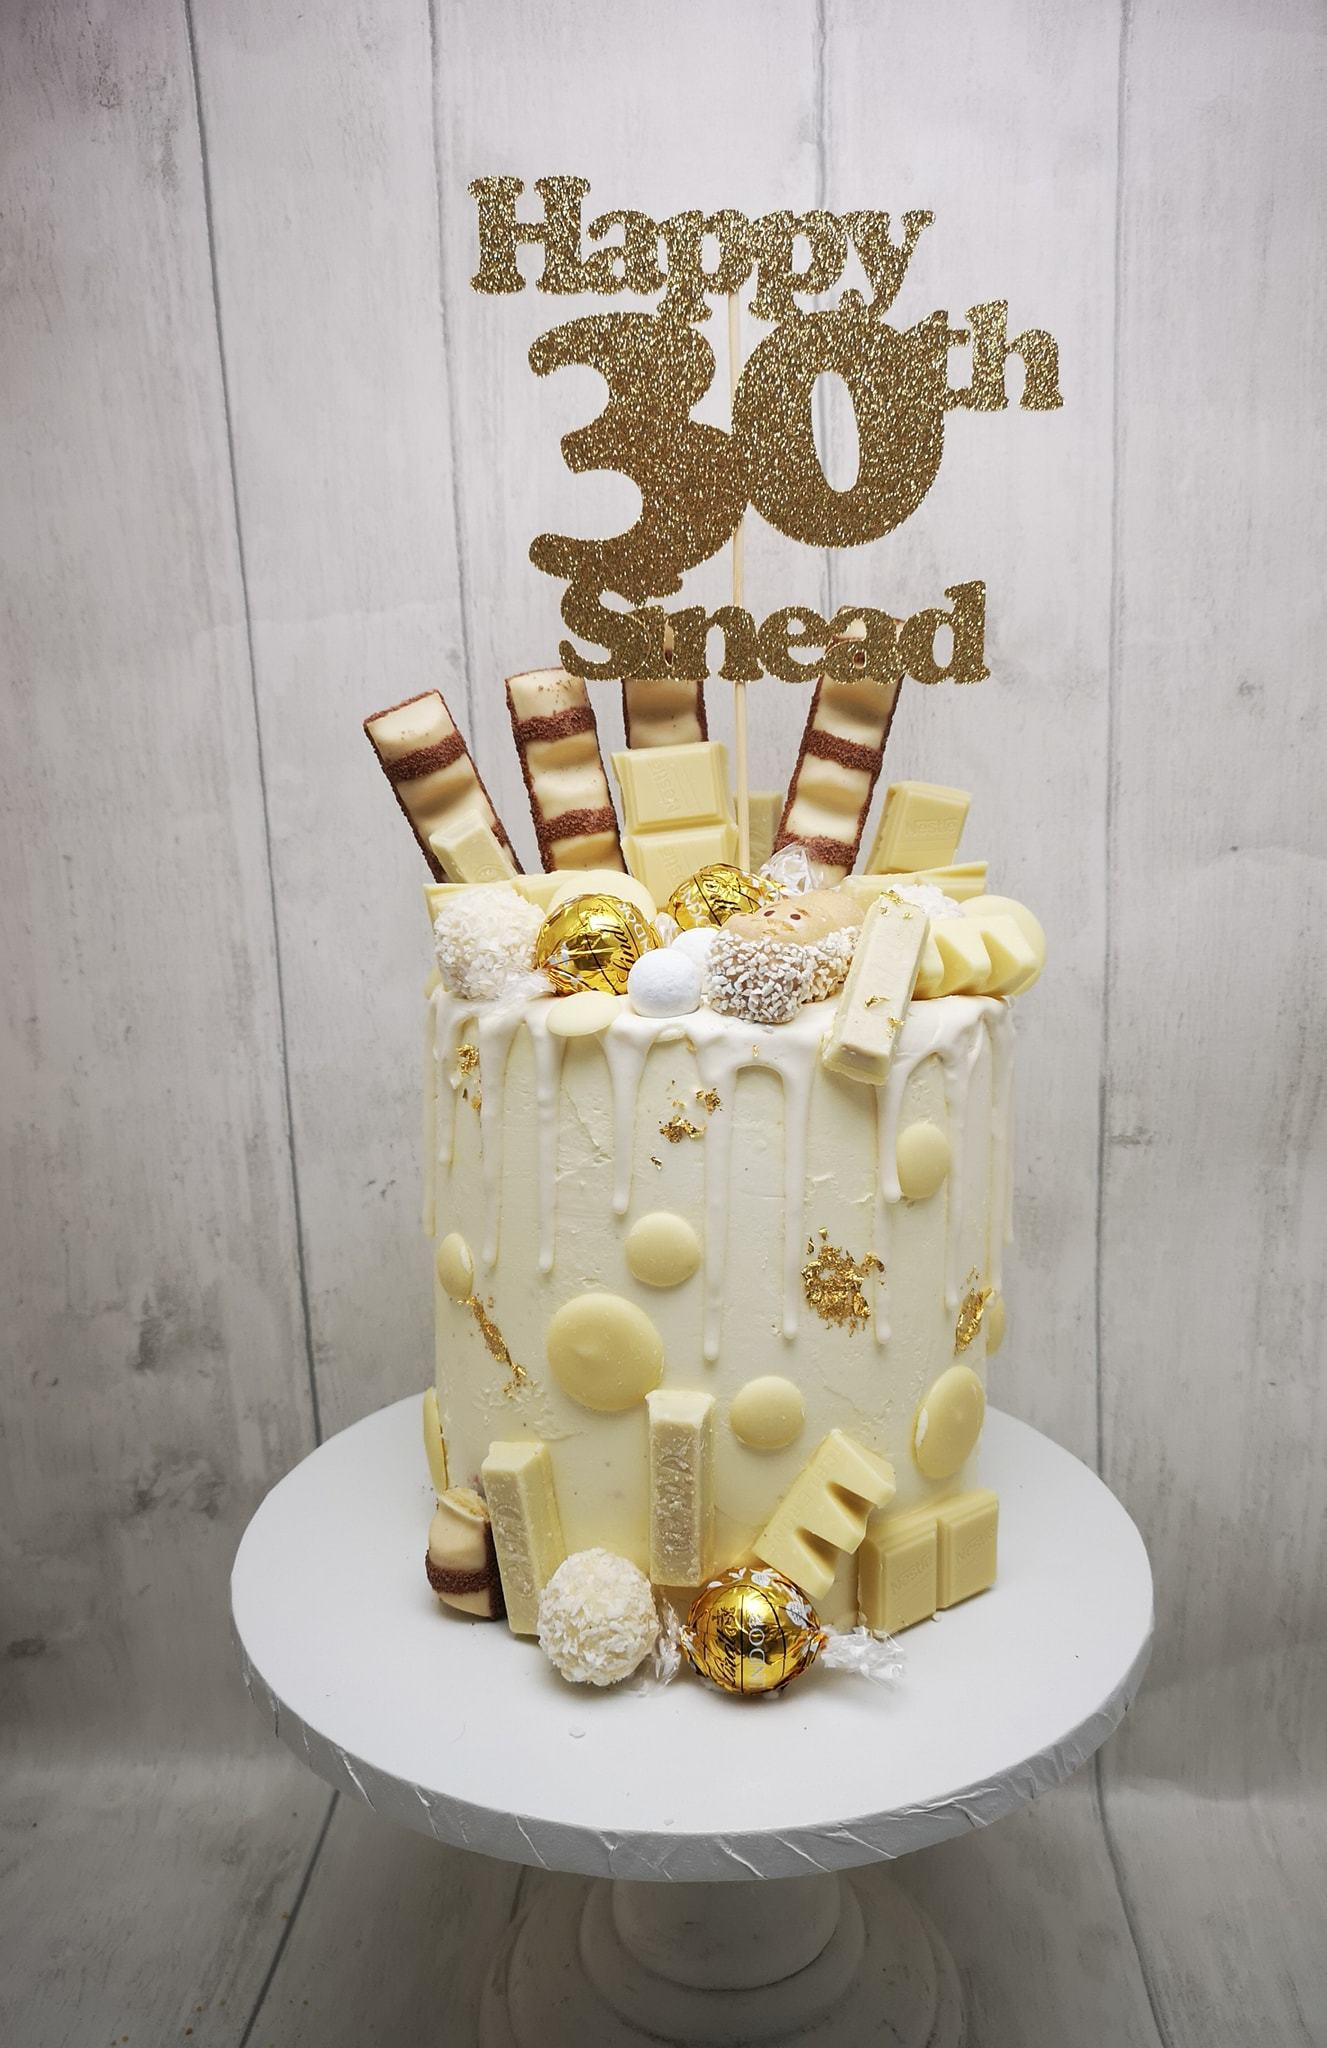 Strange 30Th Birthday Cakes 40Th Birthday Cakes Must See Ideas Here Funny Birthday Cards Online Inifodamsfinfo